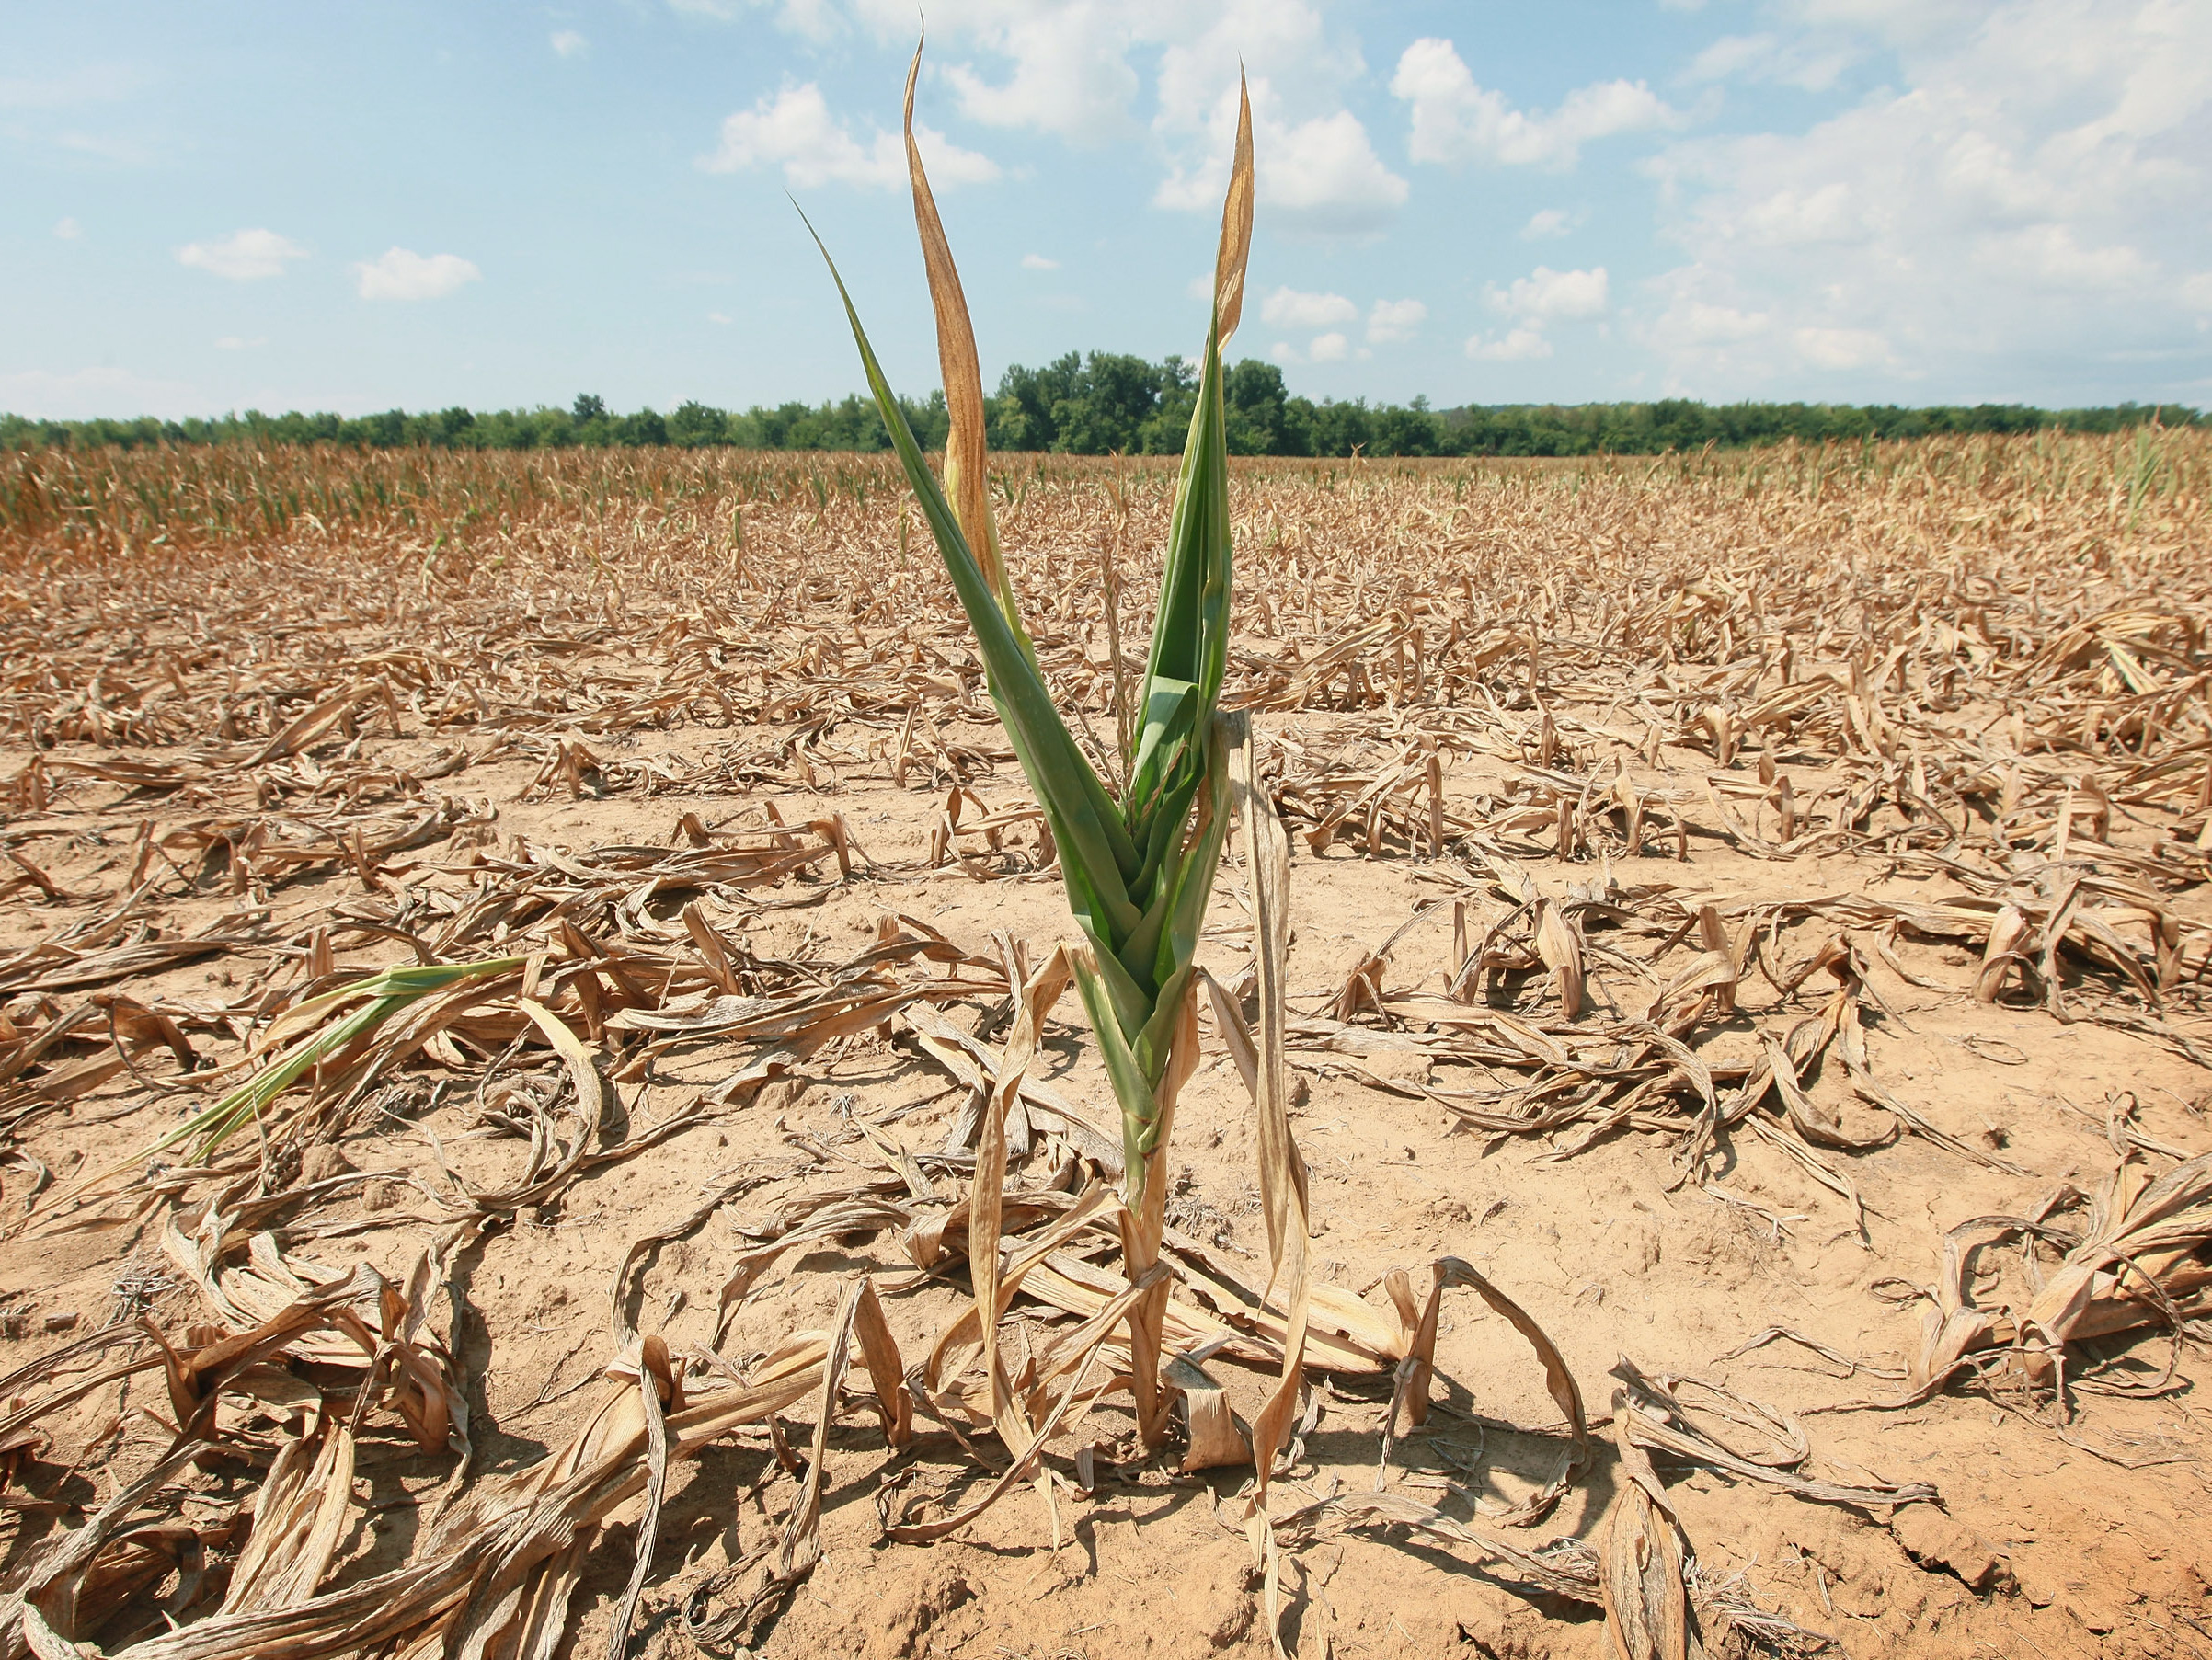 Npr Emergency >> Drought Disasters Declared In More Counties; 1,297 Affected So Far | NCPR News